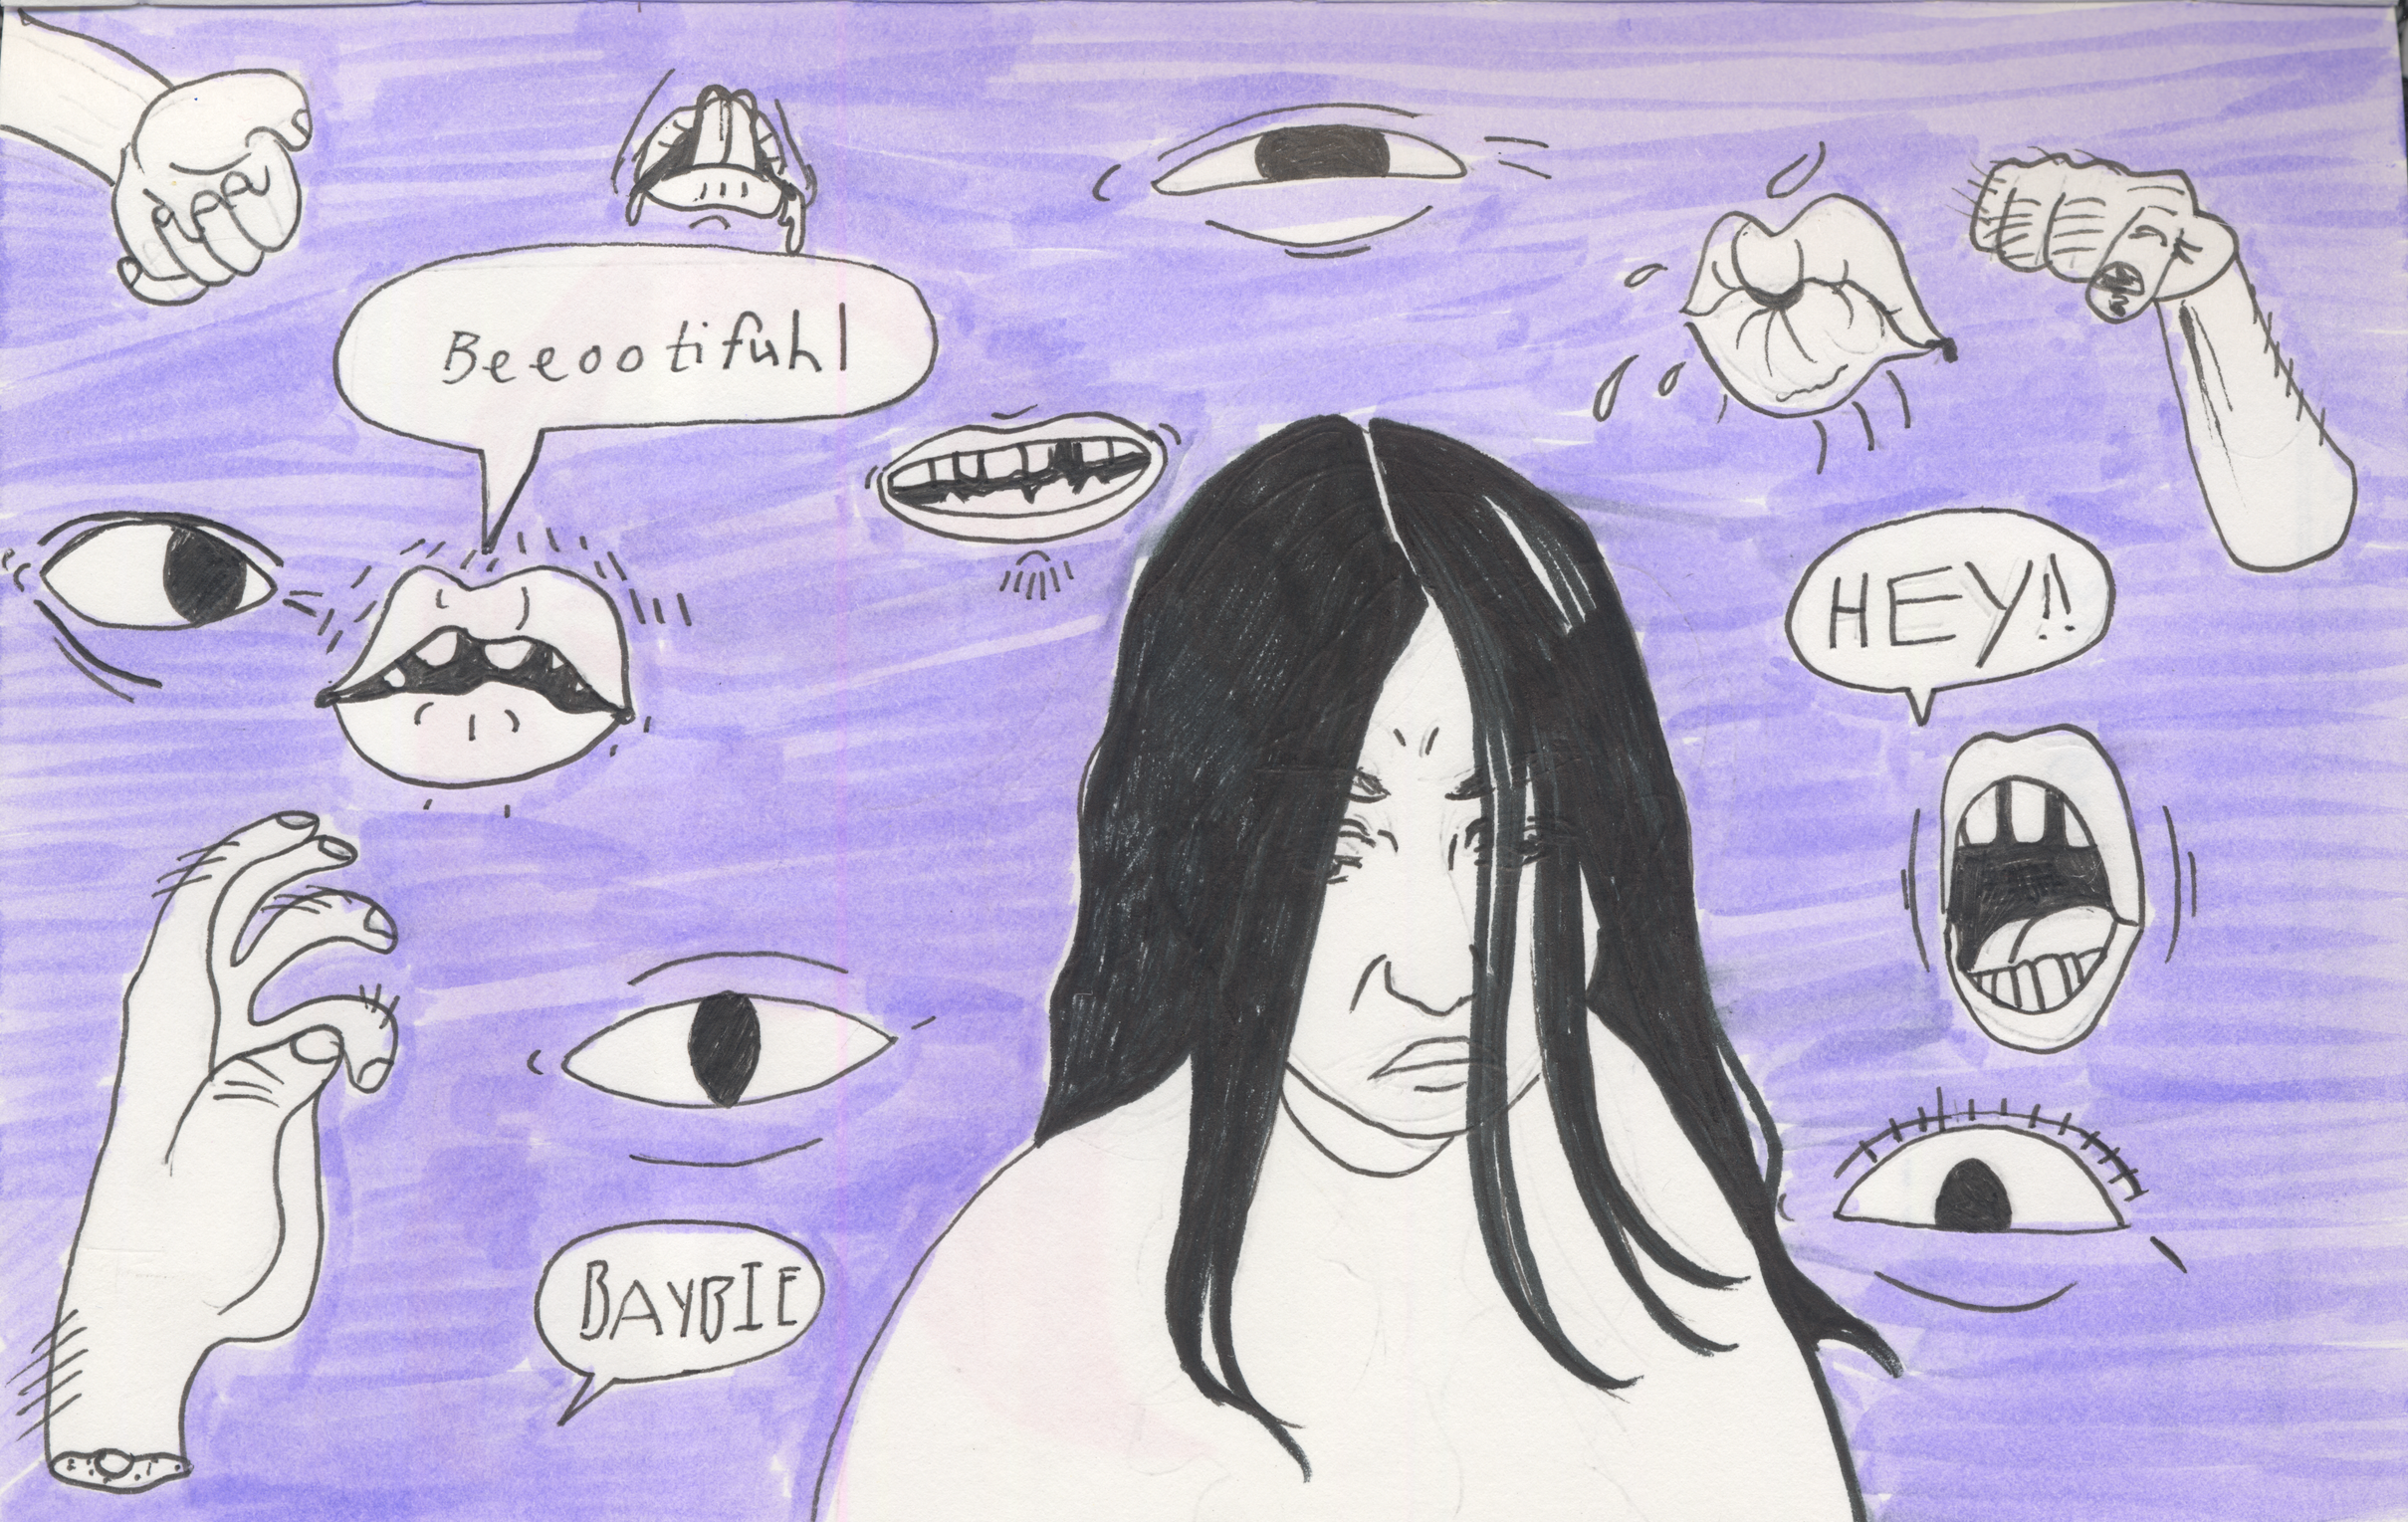 Sketch for a news story header about cat calling.